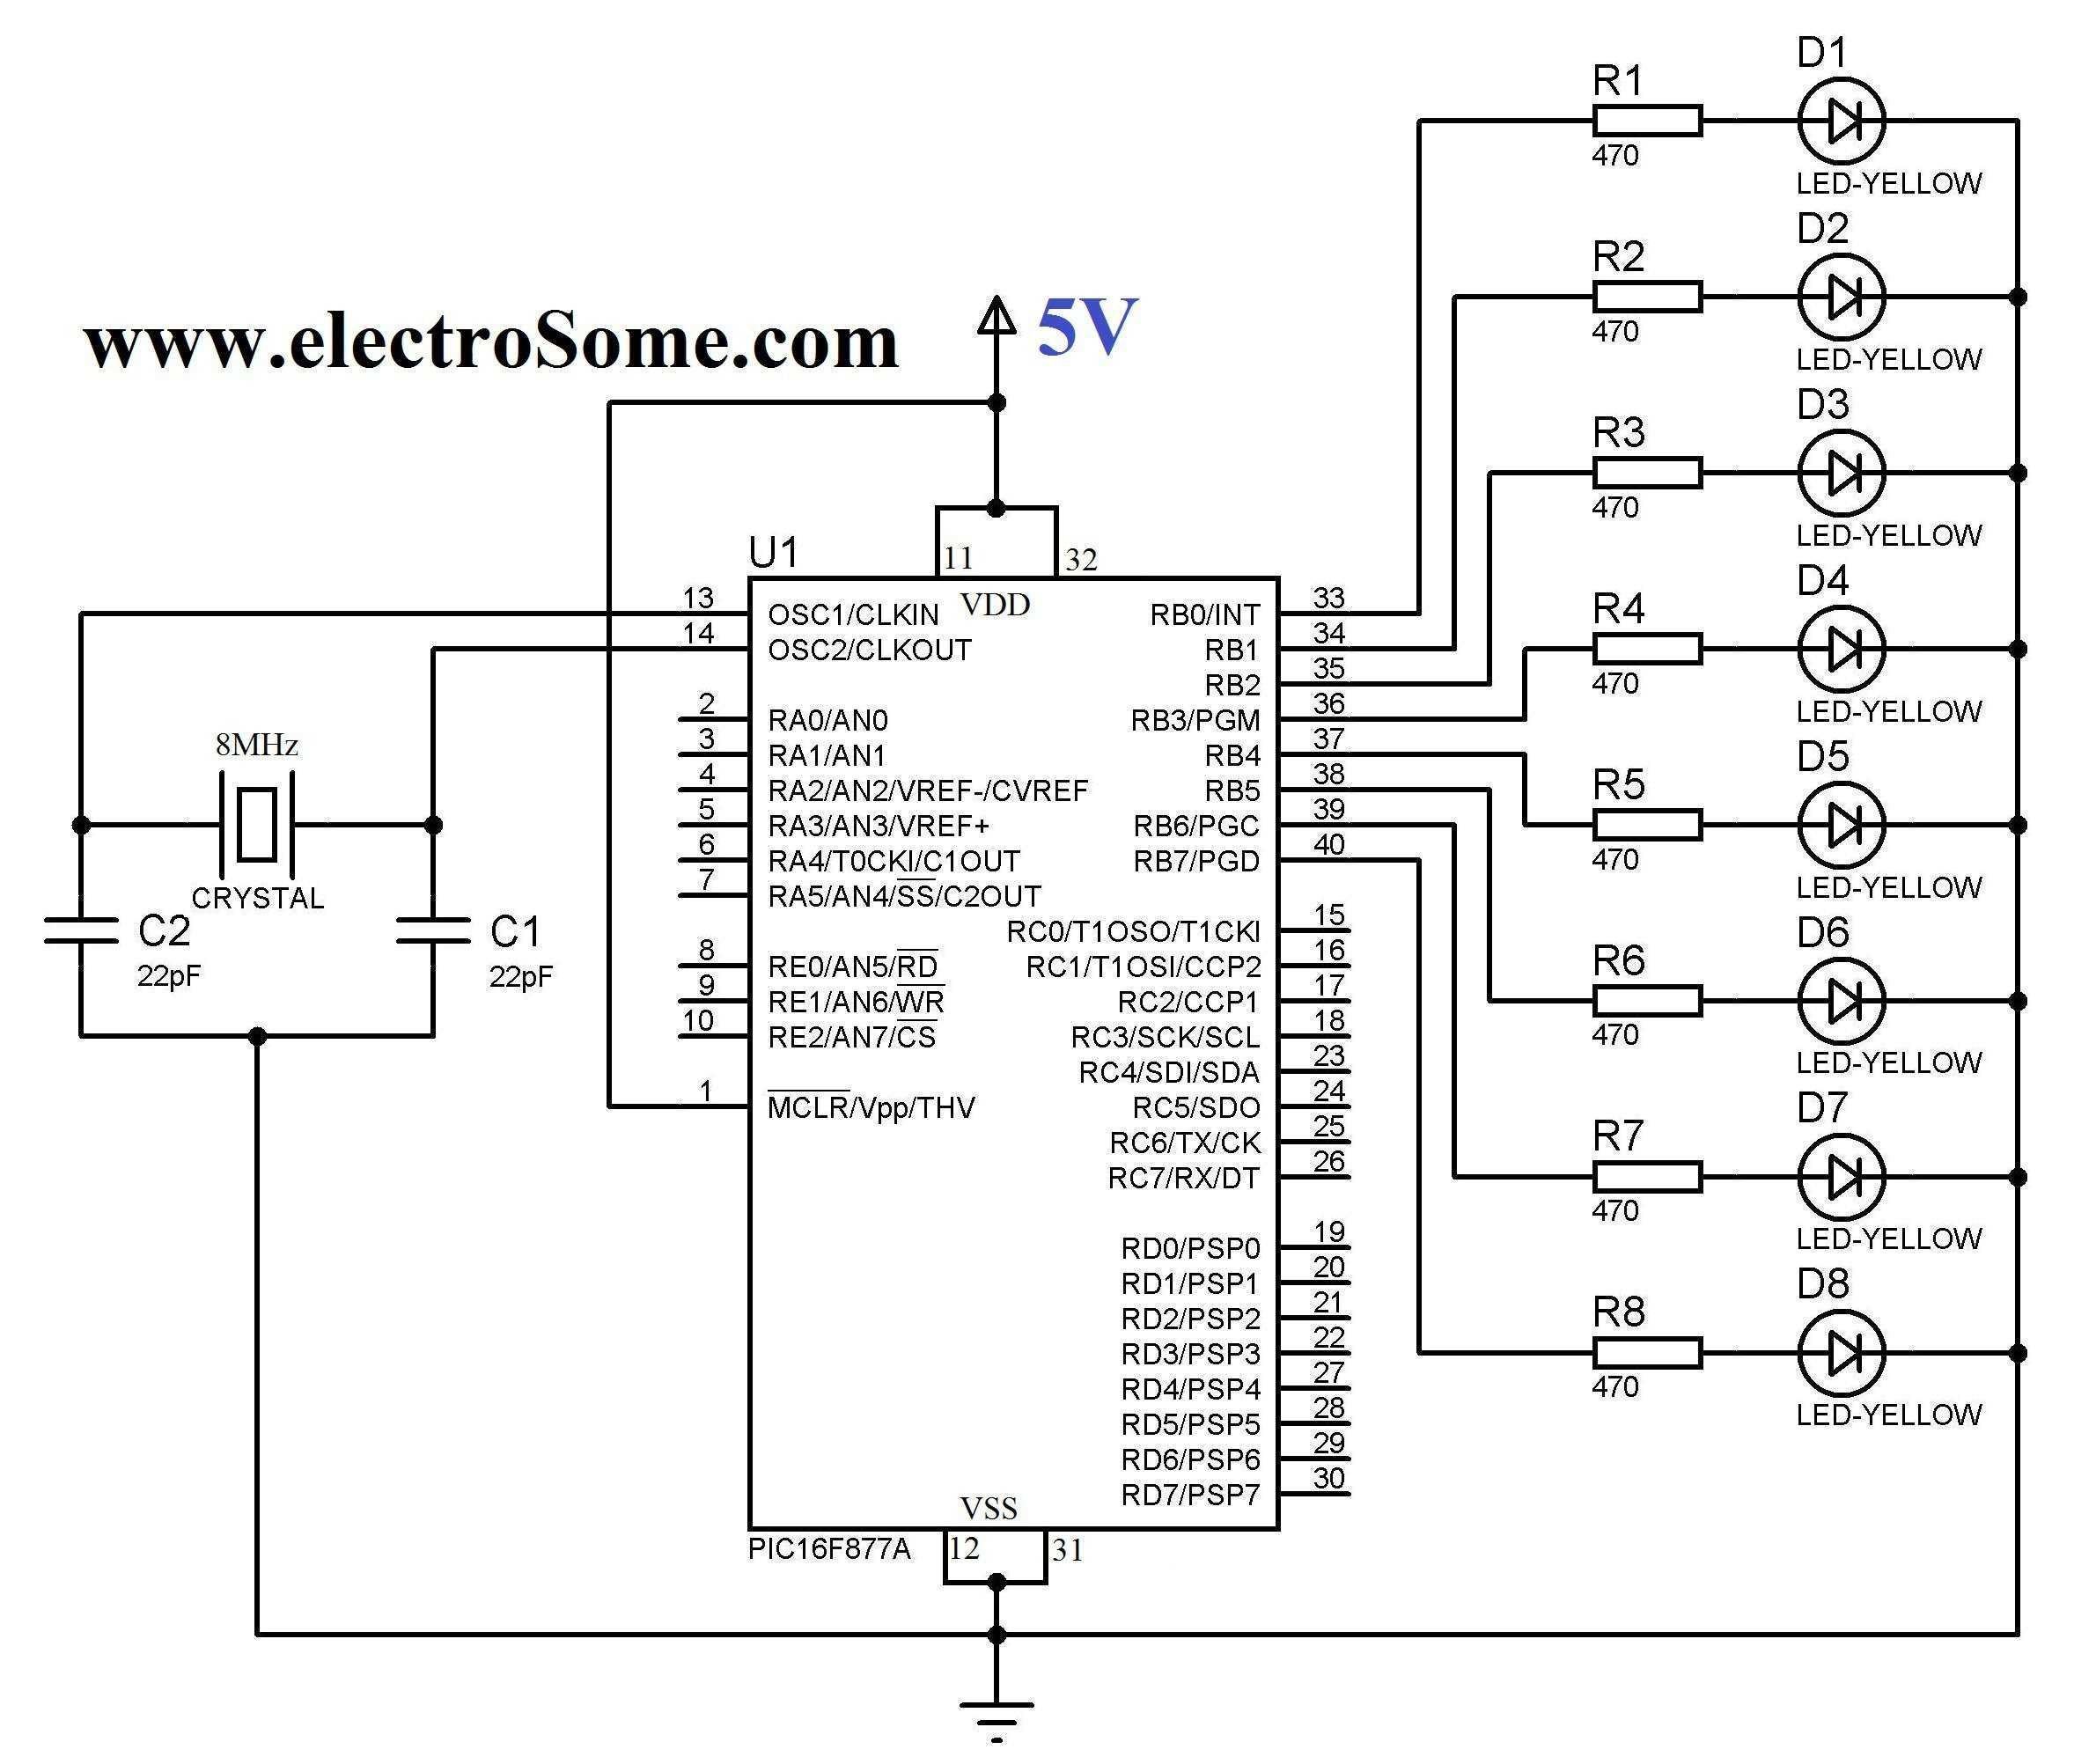 led driver wiring diagram Collection-Led Driver Circuit Diagram Unique 230v Led Driver Circuit Diagram Zen Wiring Diagram Ponents 15-q